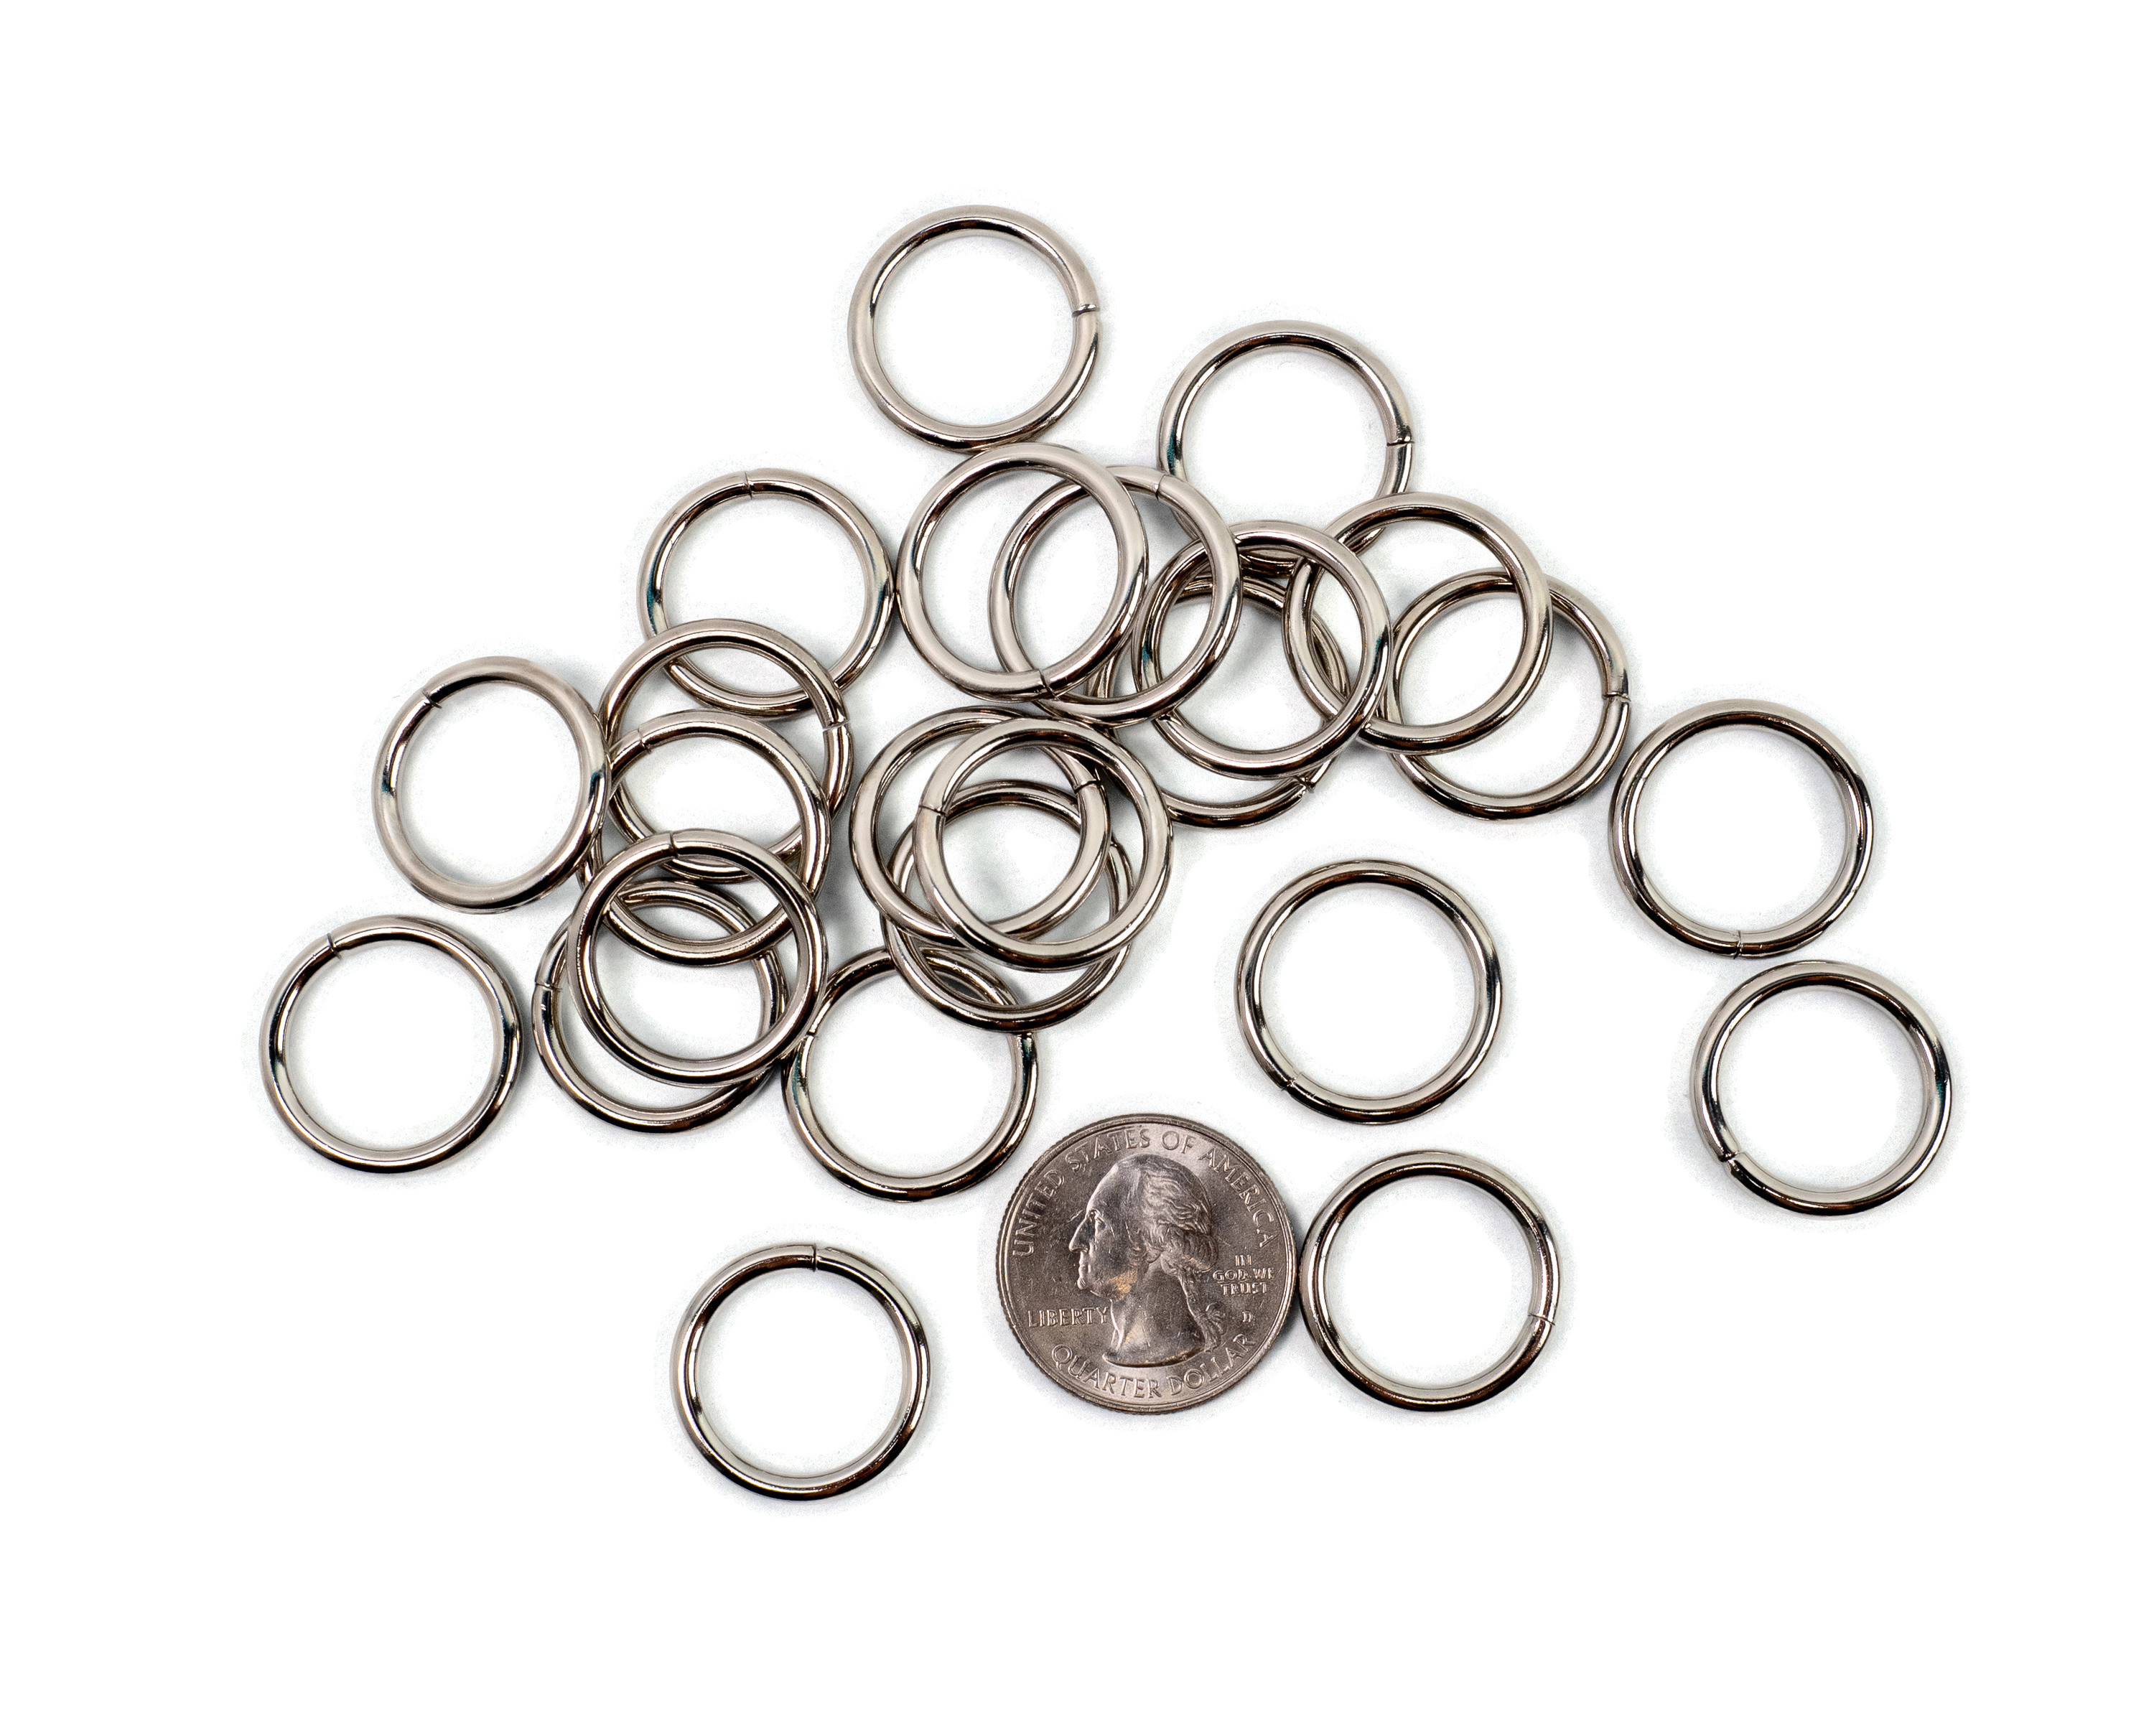 Stainless Steel - 16 mm O Ring